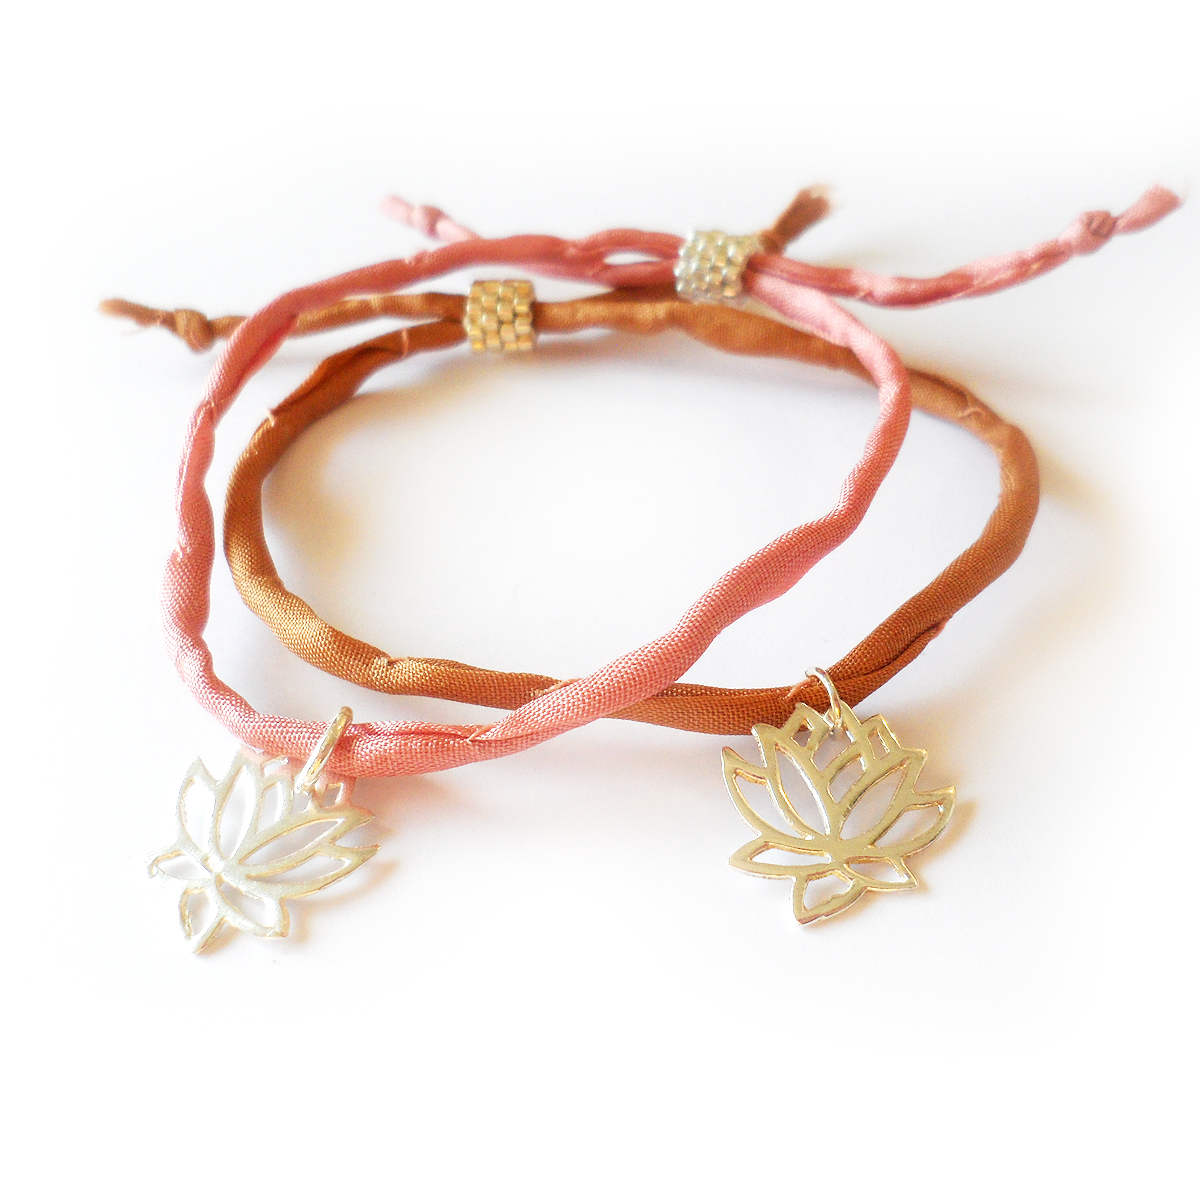 Lotus Flower Bracelet With Sterling Silver Charm And Silk Cord